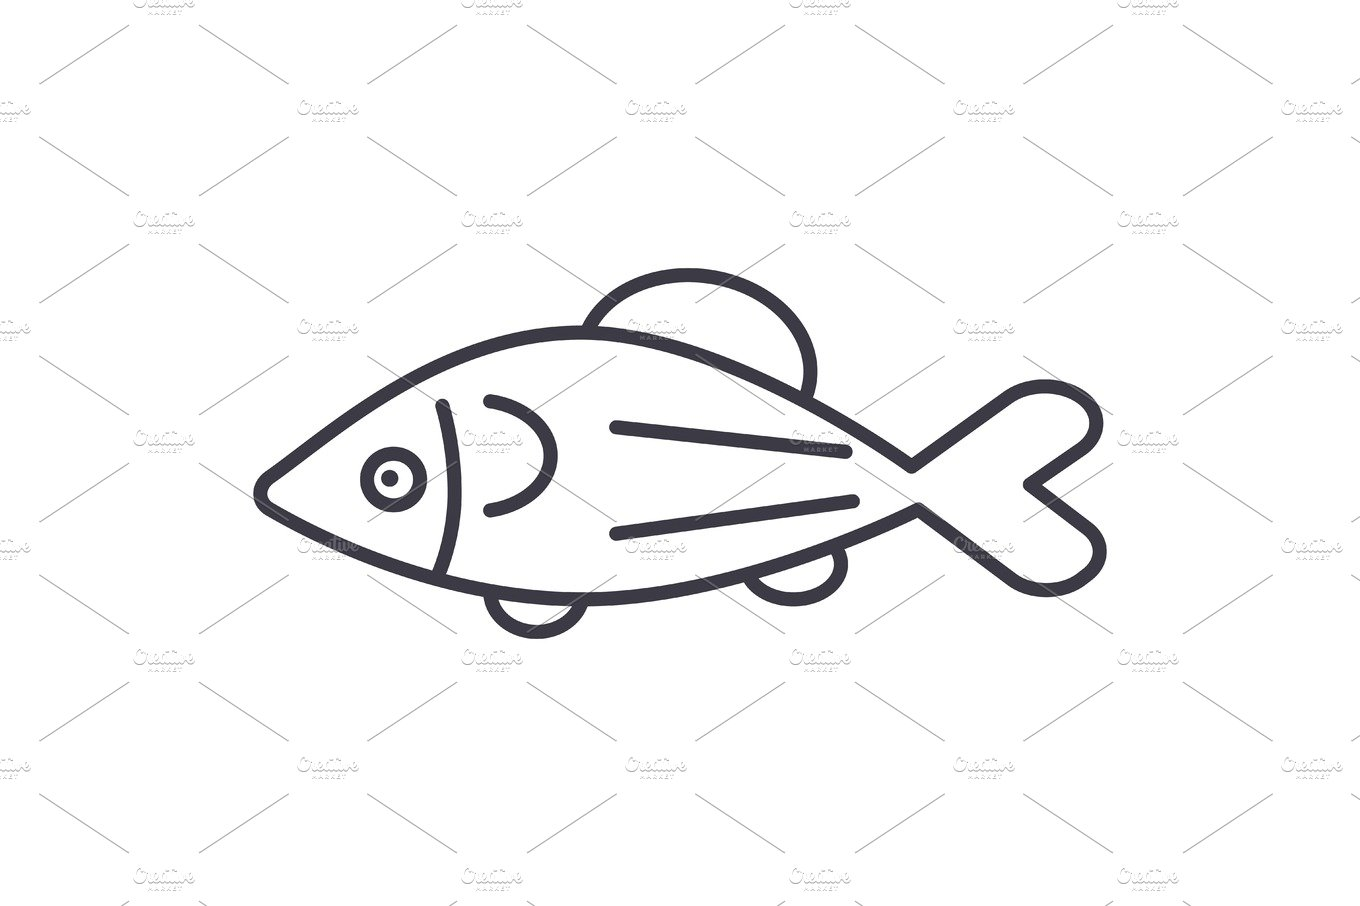 Line Art Of Fish : Fish salmon vector line icon sign illustration on background